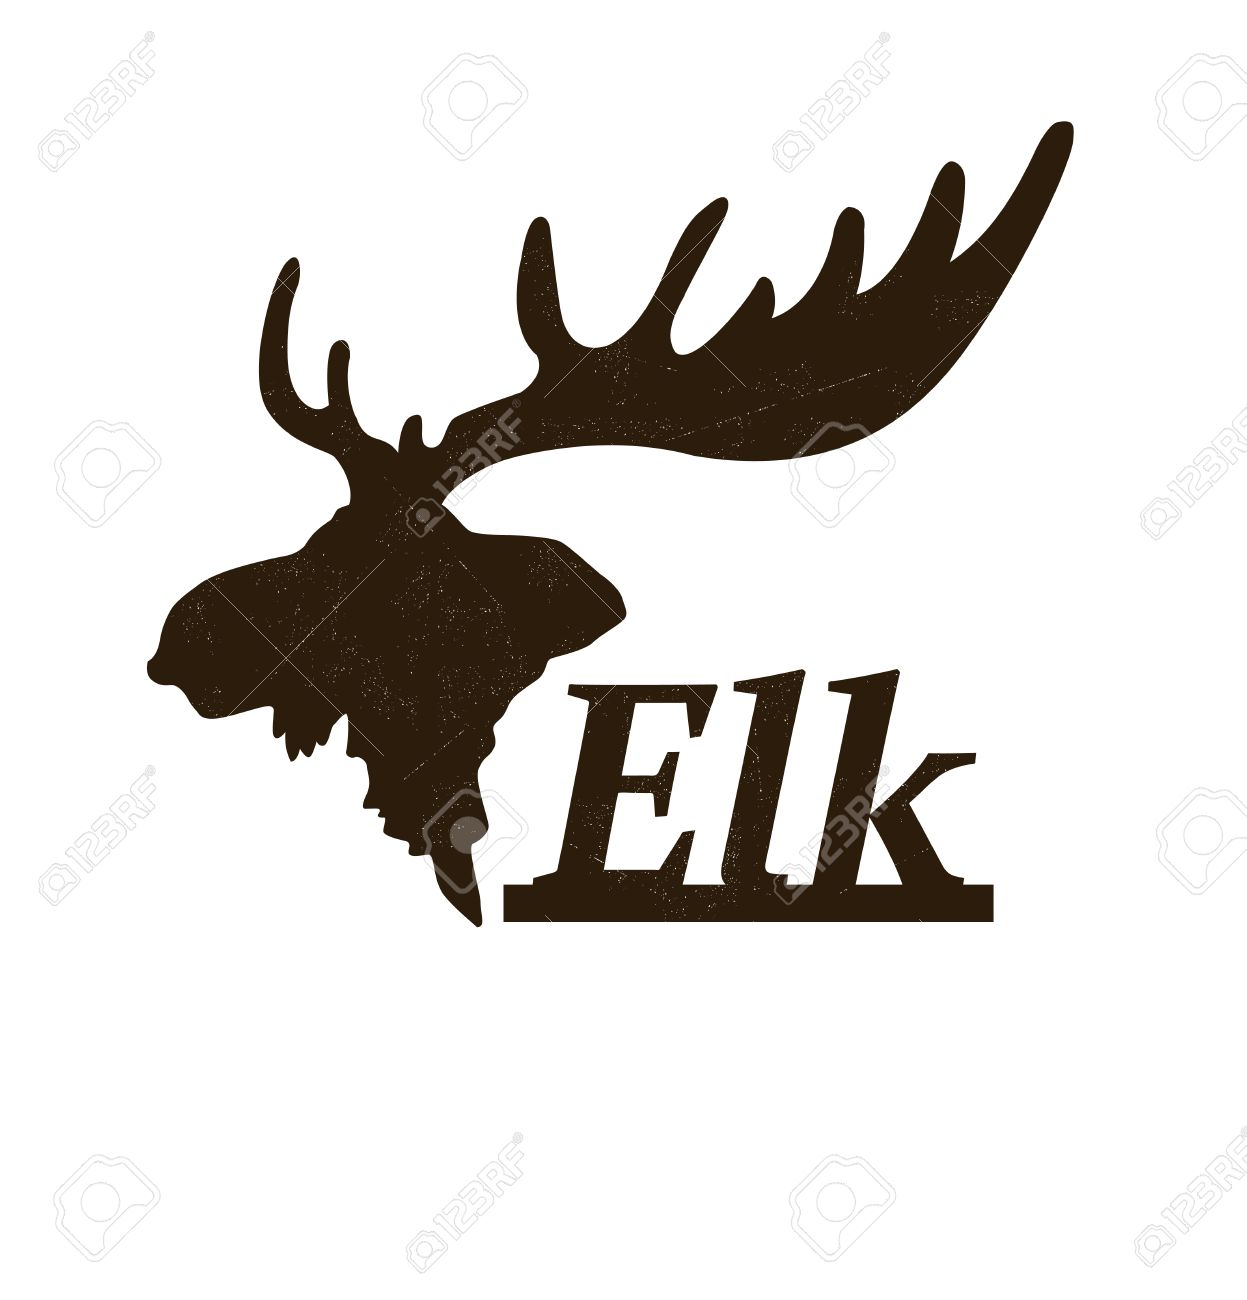 elk head stock photos royalty free elk head images and pictures